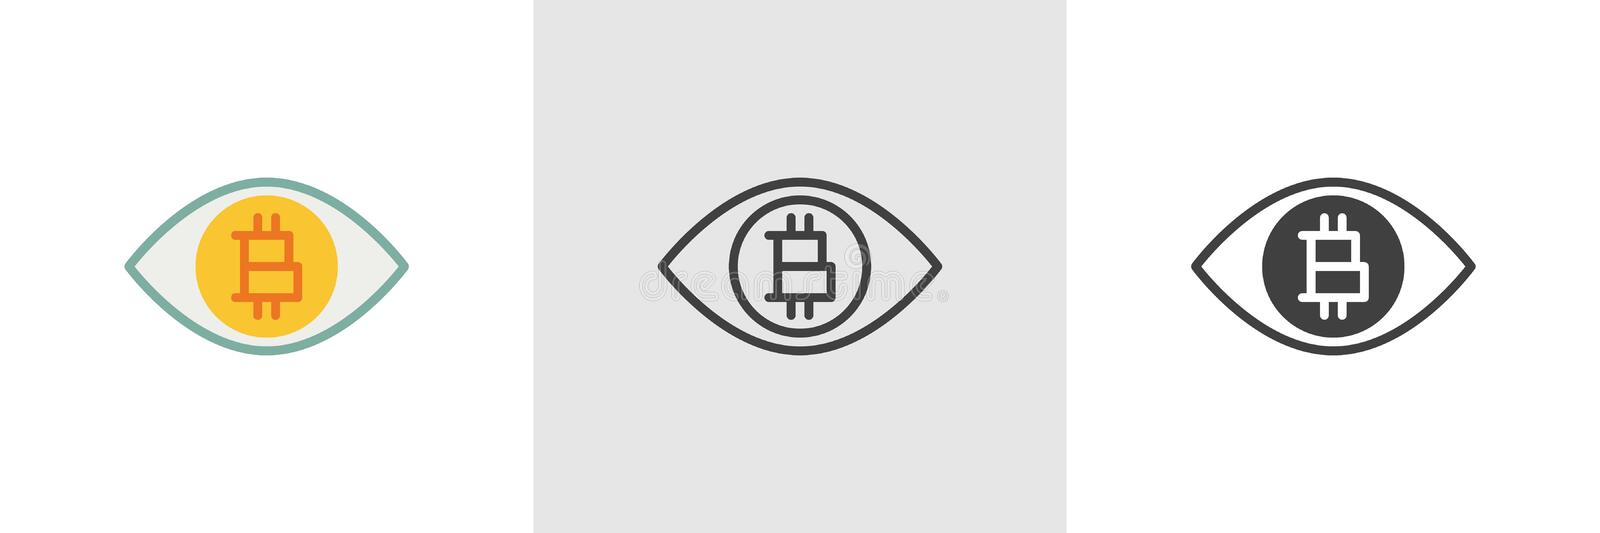 Bitcoin ögonsymbol stock illustrationer